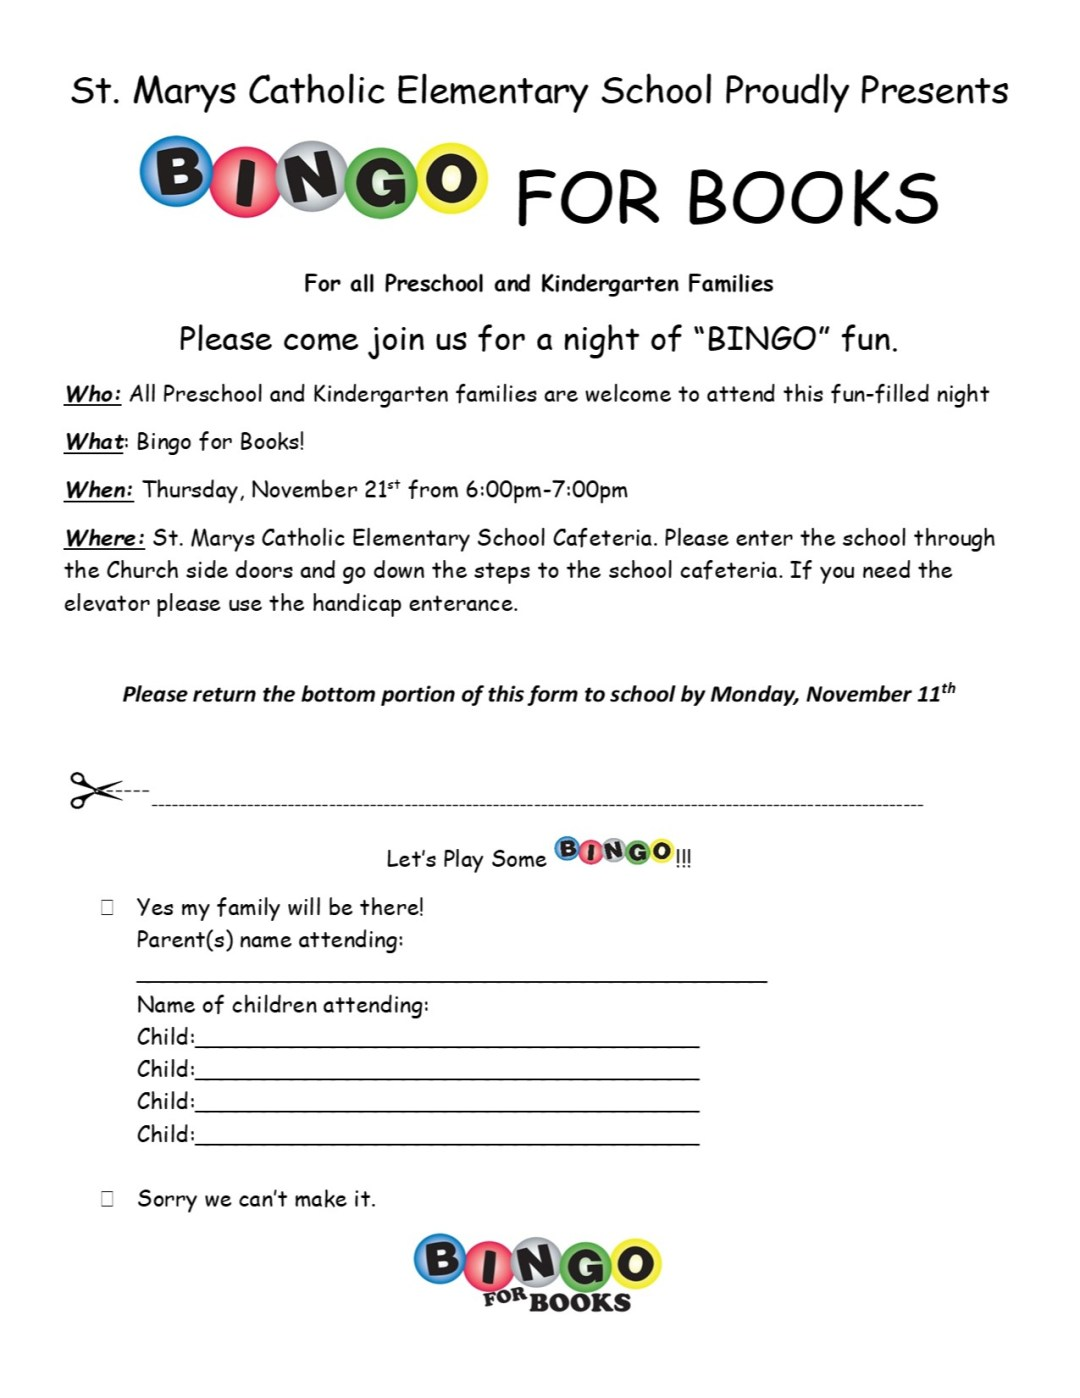 SMCES Bingo for Books 11/21/19